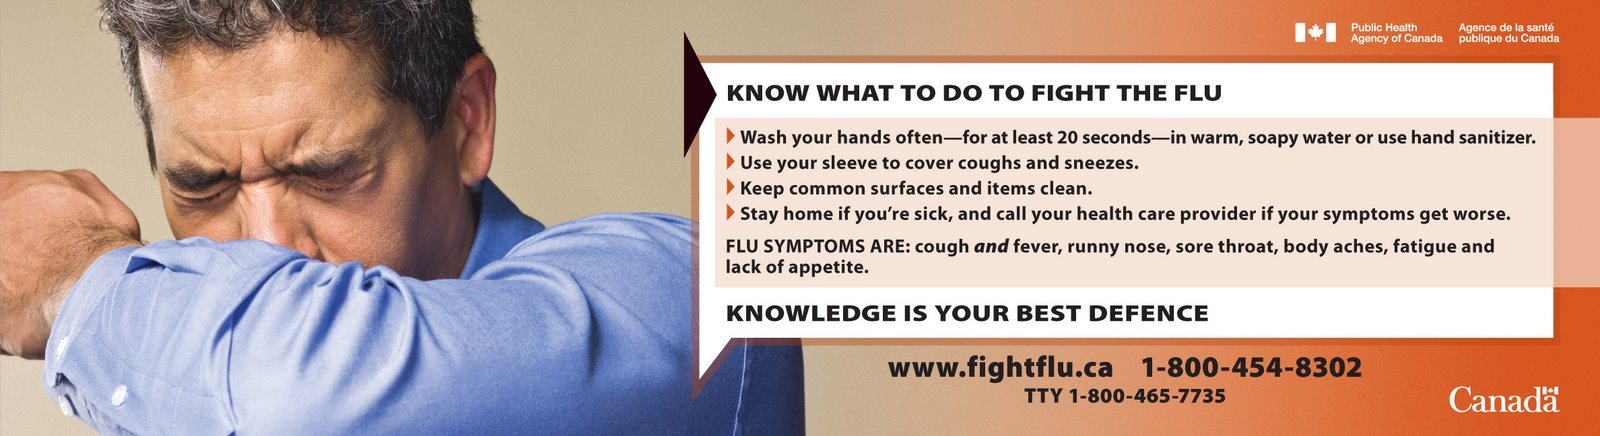 Our team of health marketers created this Fight Flu bus interior ad for PHAC as part of a healthcare marketing campaign. Headline reads: Know what to do to fight the flu